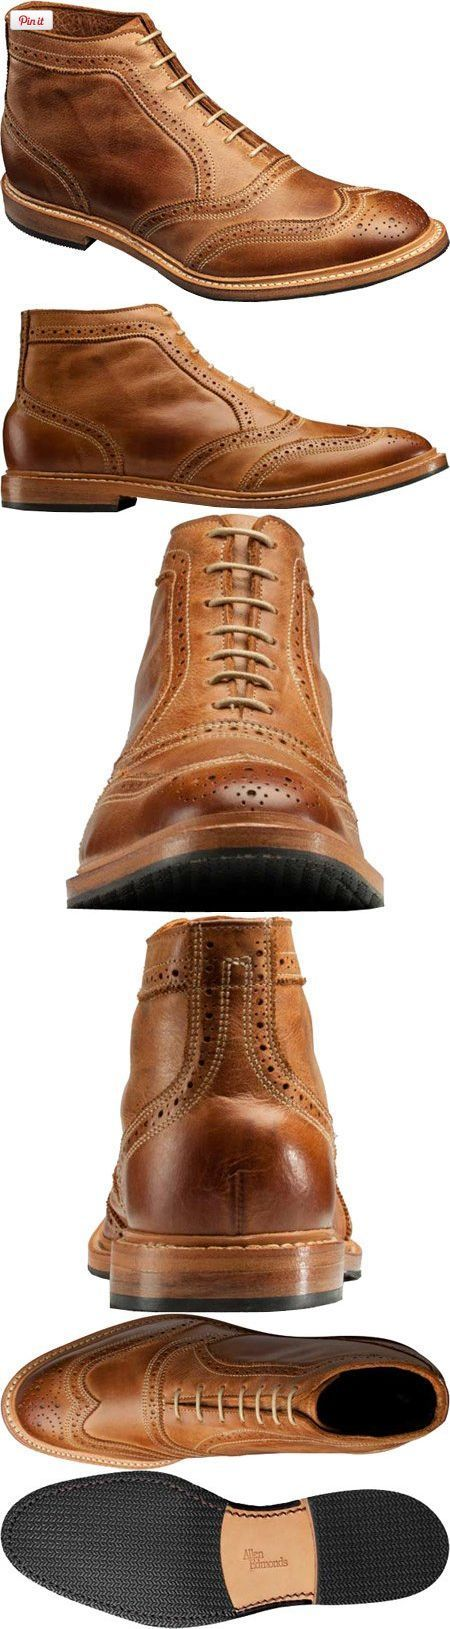 Allen Edmonds Men's Cronmok Tan Leather 9 B US, Enjoy understated style in the Allen-Edmonds Cronmok lace-up boot. The supple leather upper of this ruggedly-sophisticated men's shoe boasts perforation details for a cool look and feel. A durable syn..., #Apparel, #Boots - nice mens shoes brands, latest shoes for mens, mens wedding shoes